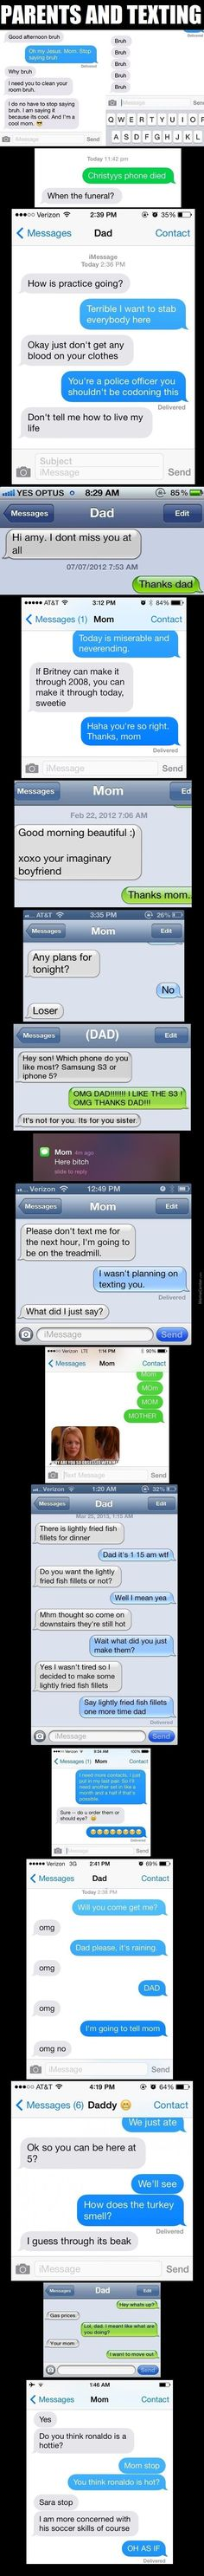 Parents and messaging